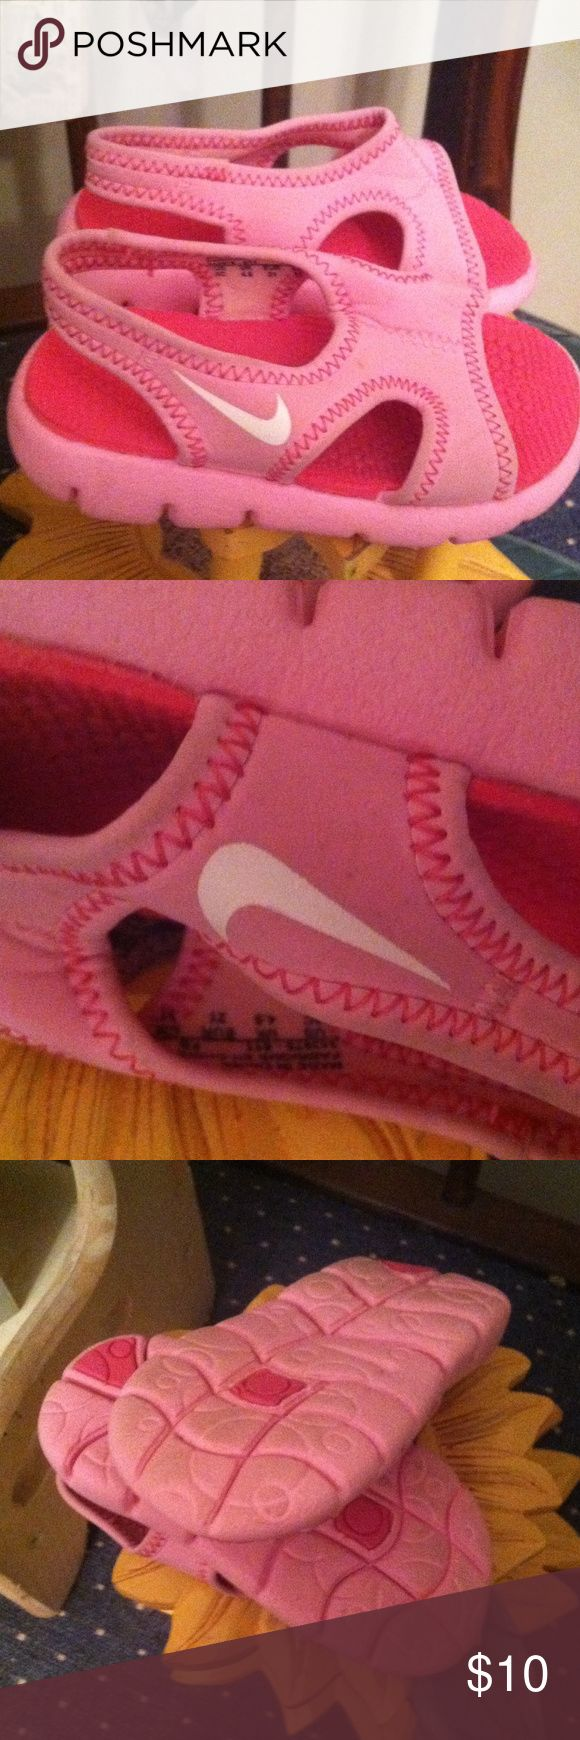 Nike water shoes sz 5 toddler Protect her feet in the pool. Nice very gently pre loved !!!  Pink nike Nike Shoes Water Shoes